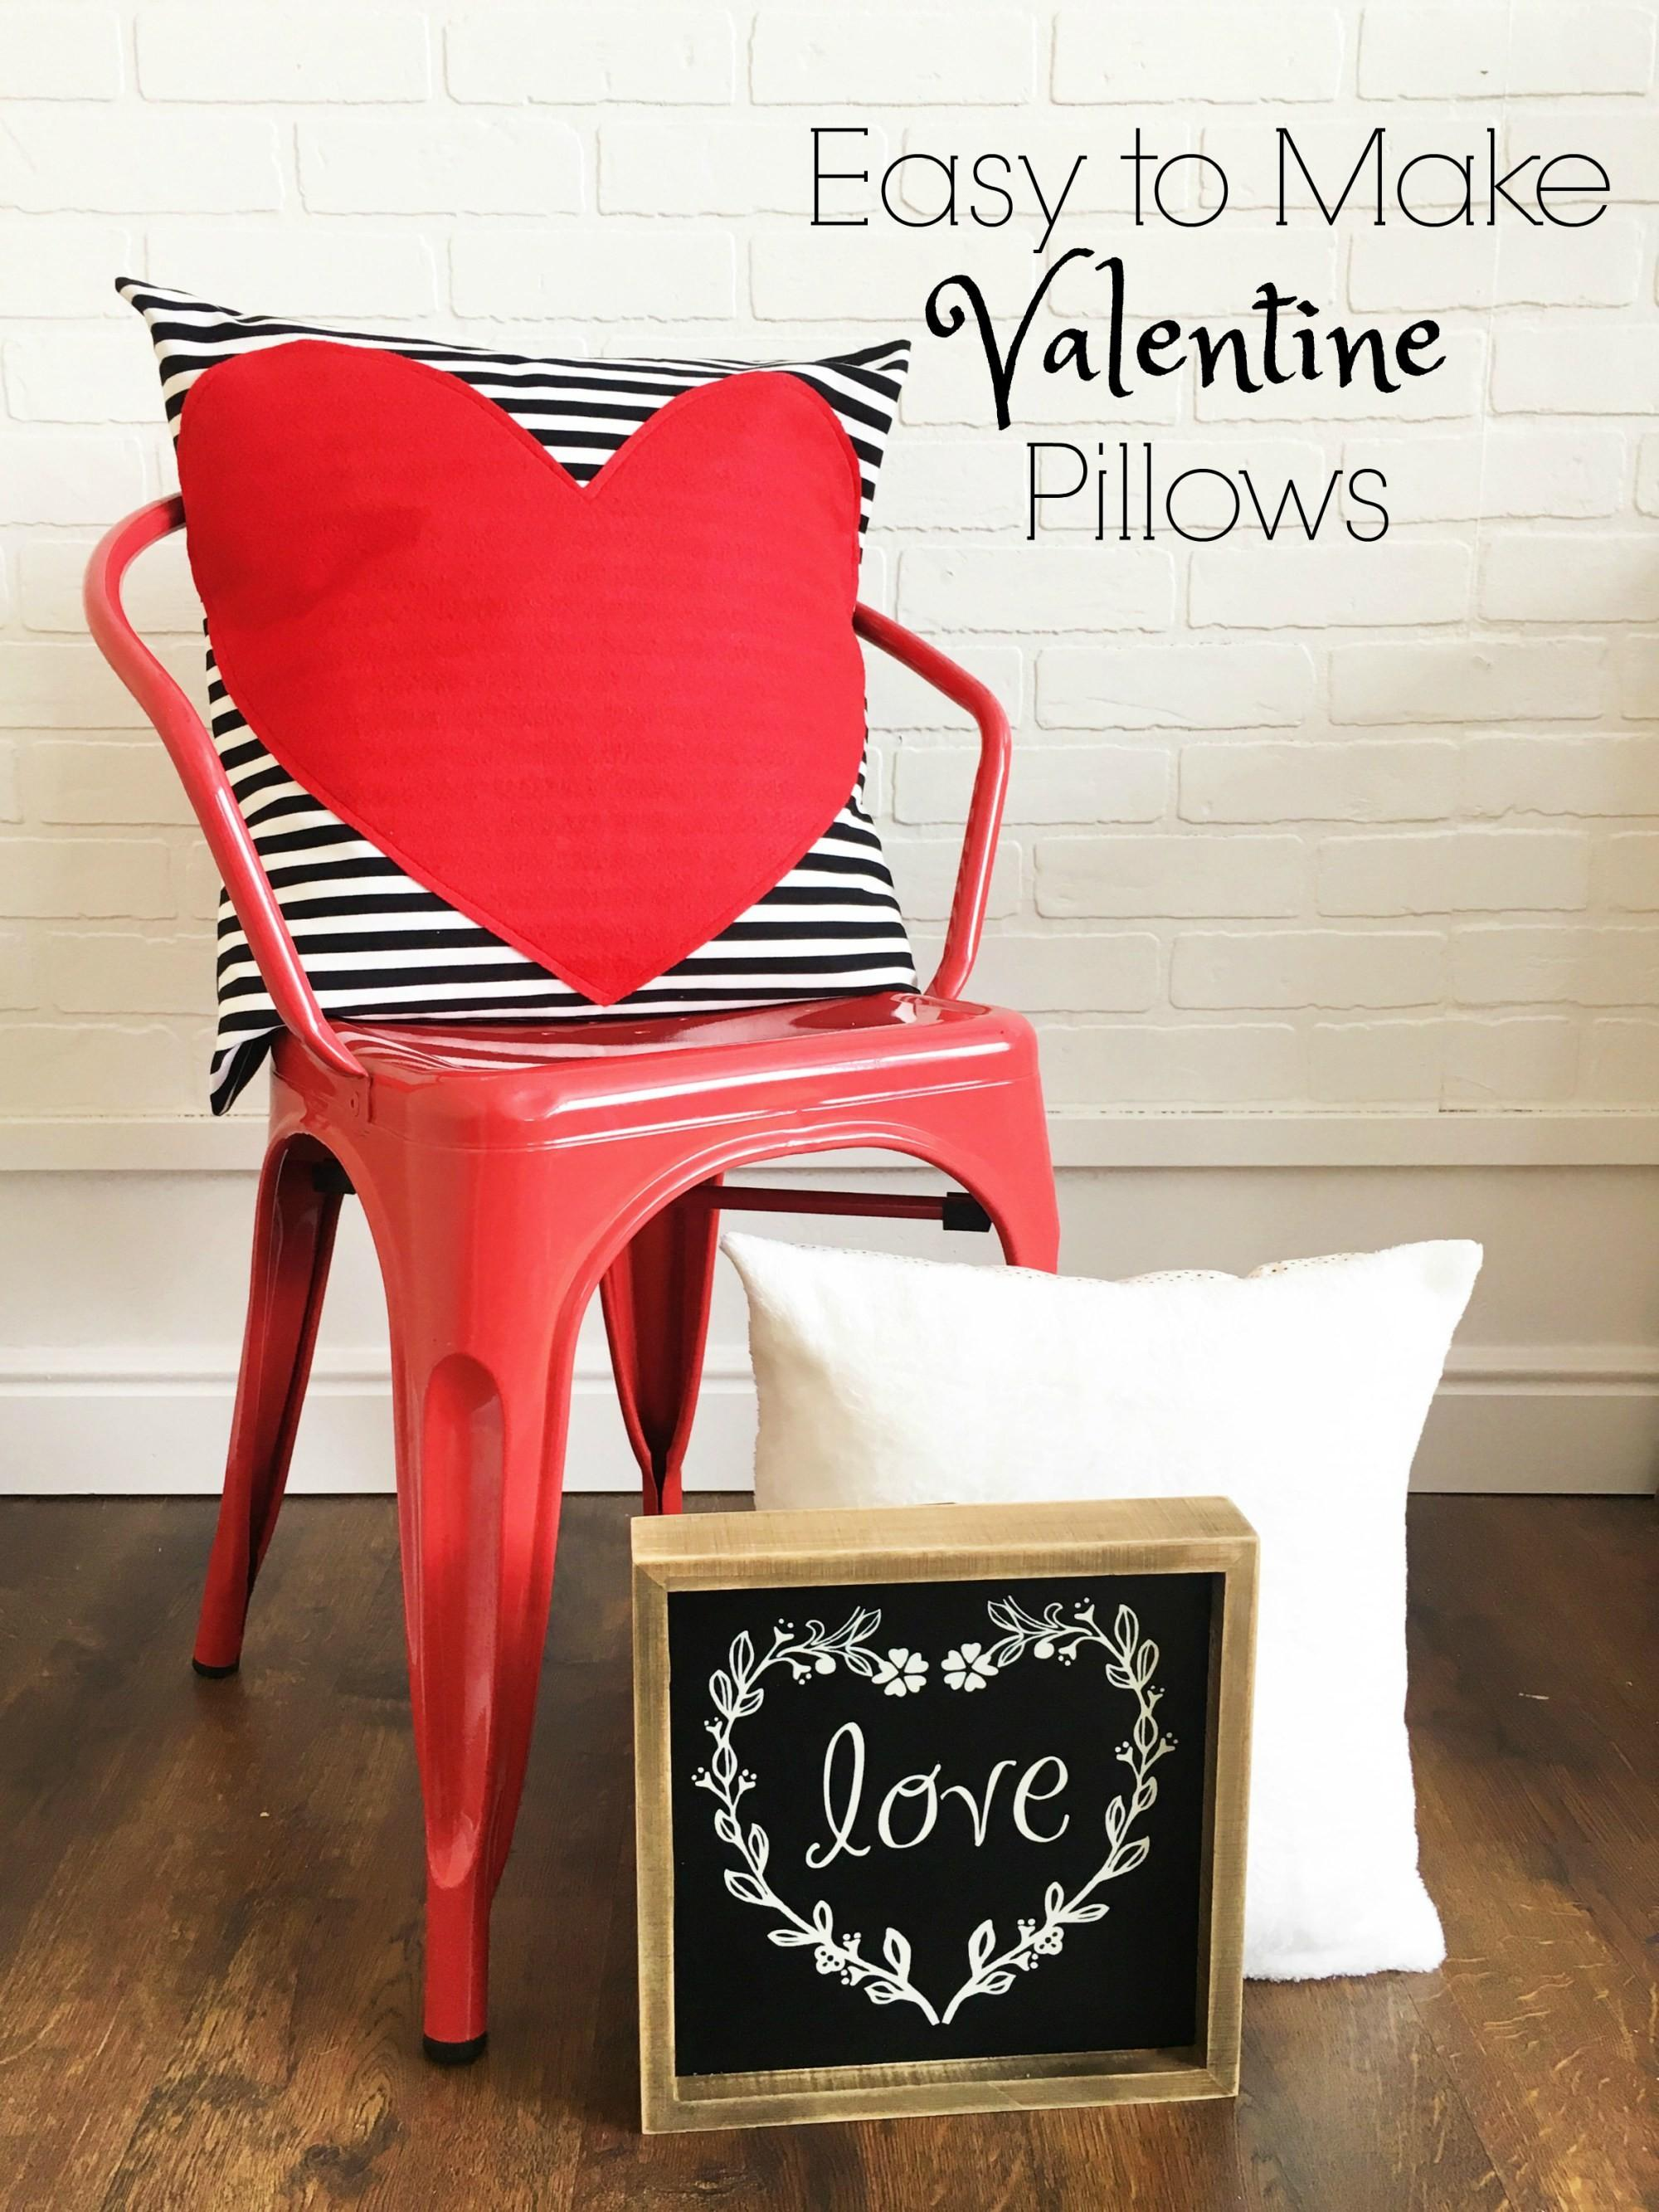 Valentine Pillows Polka Dot Chair